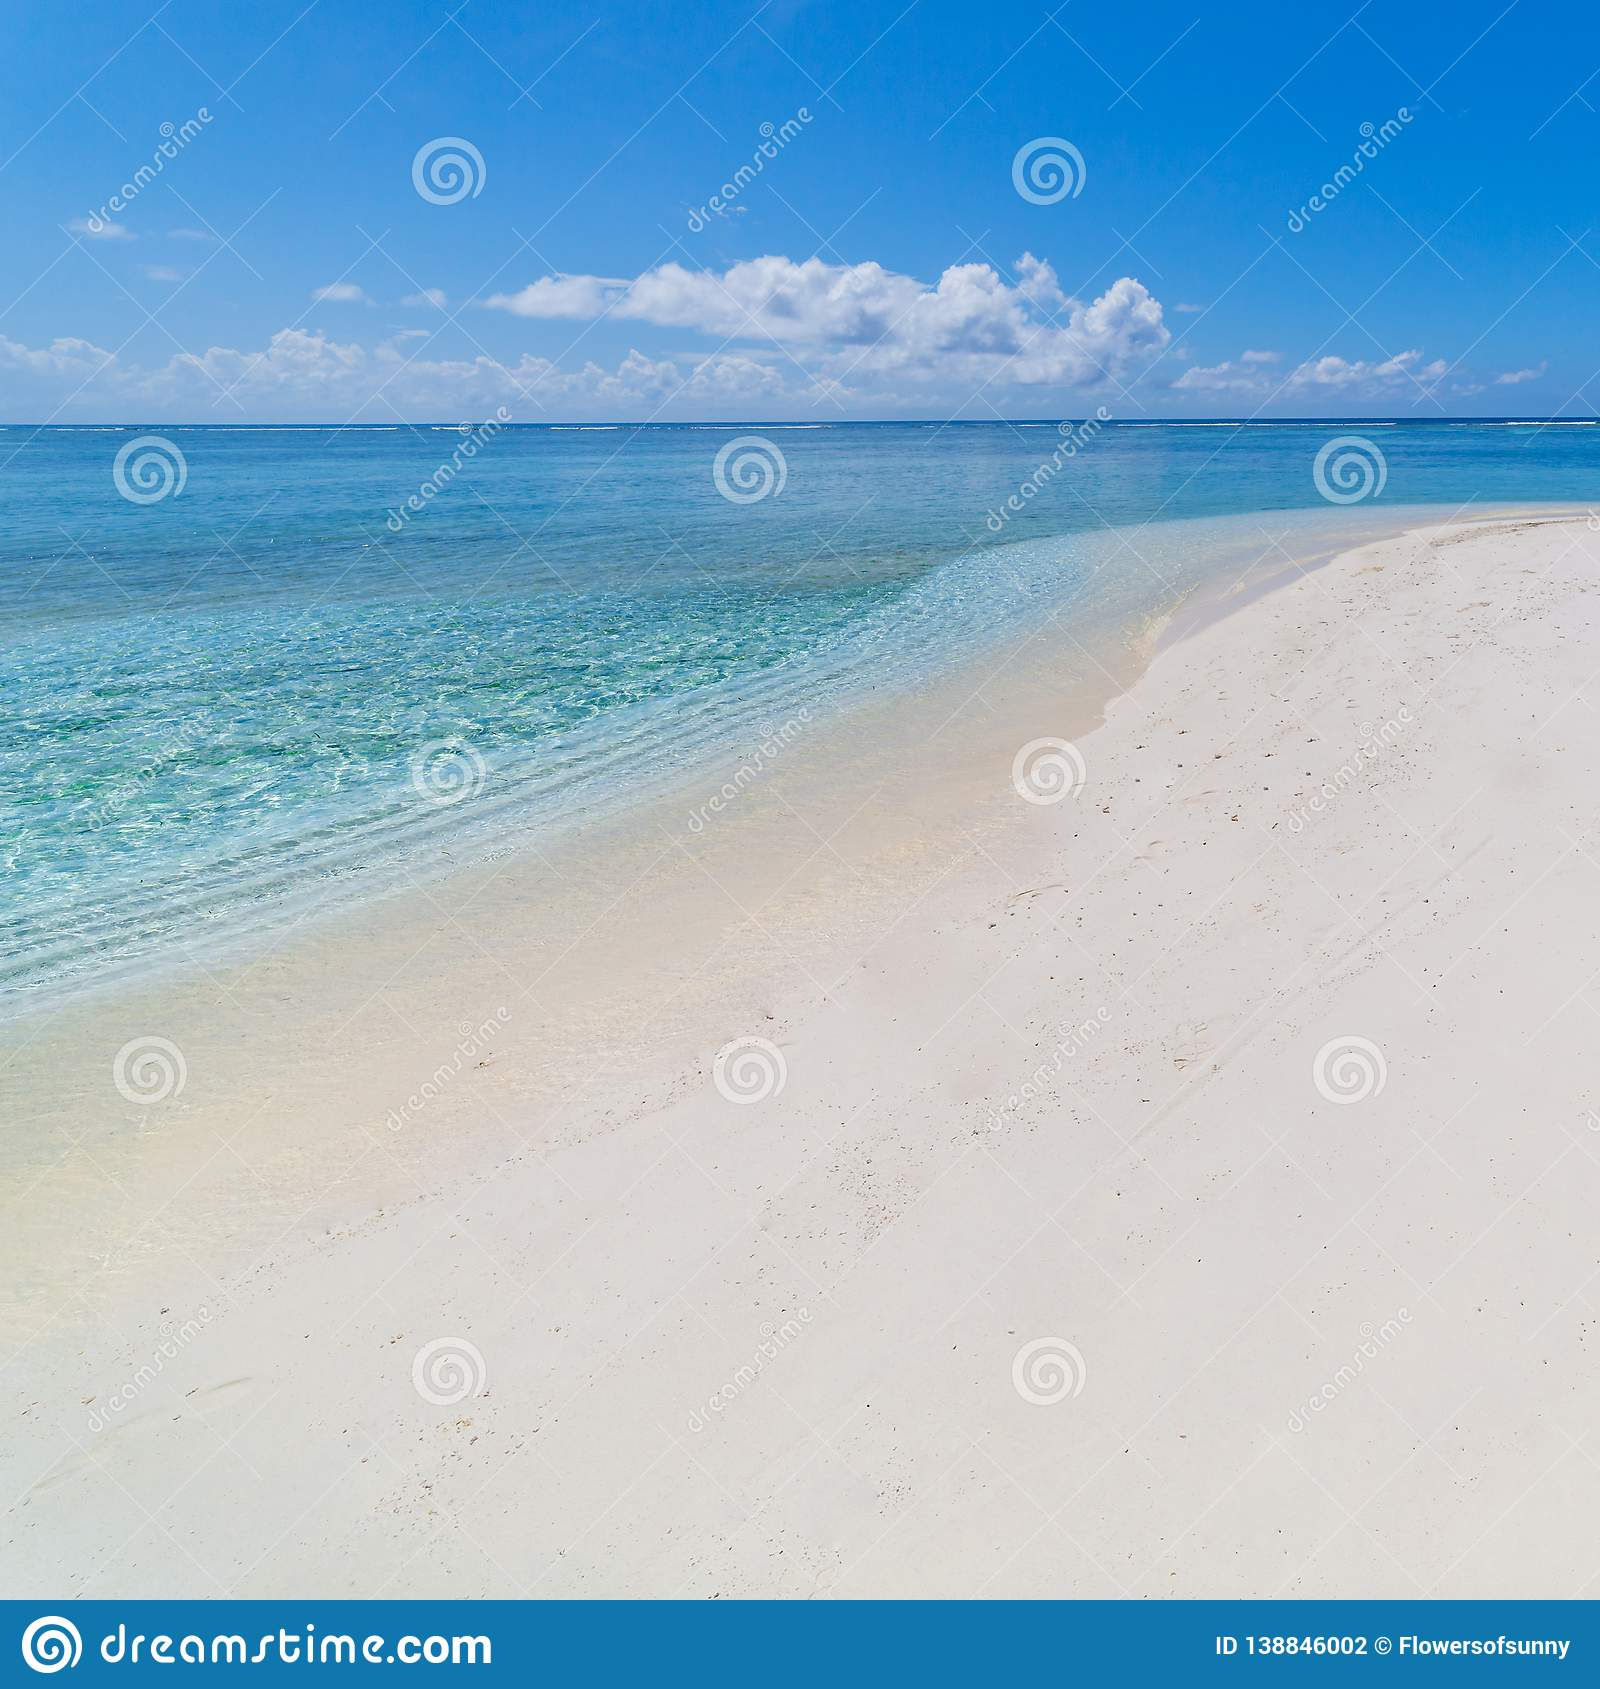 Tropical Beach And Peaceful Ocean: Peaceful Beach Scene, Calm Sea With Blue Sky And White